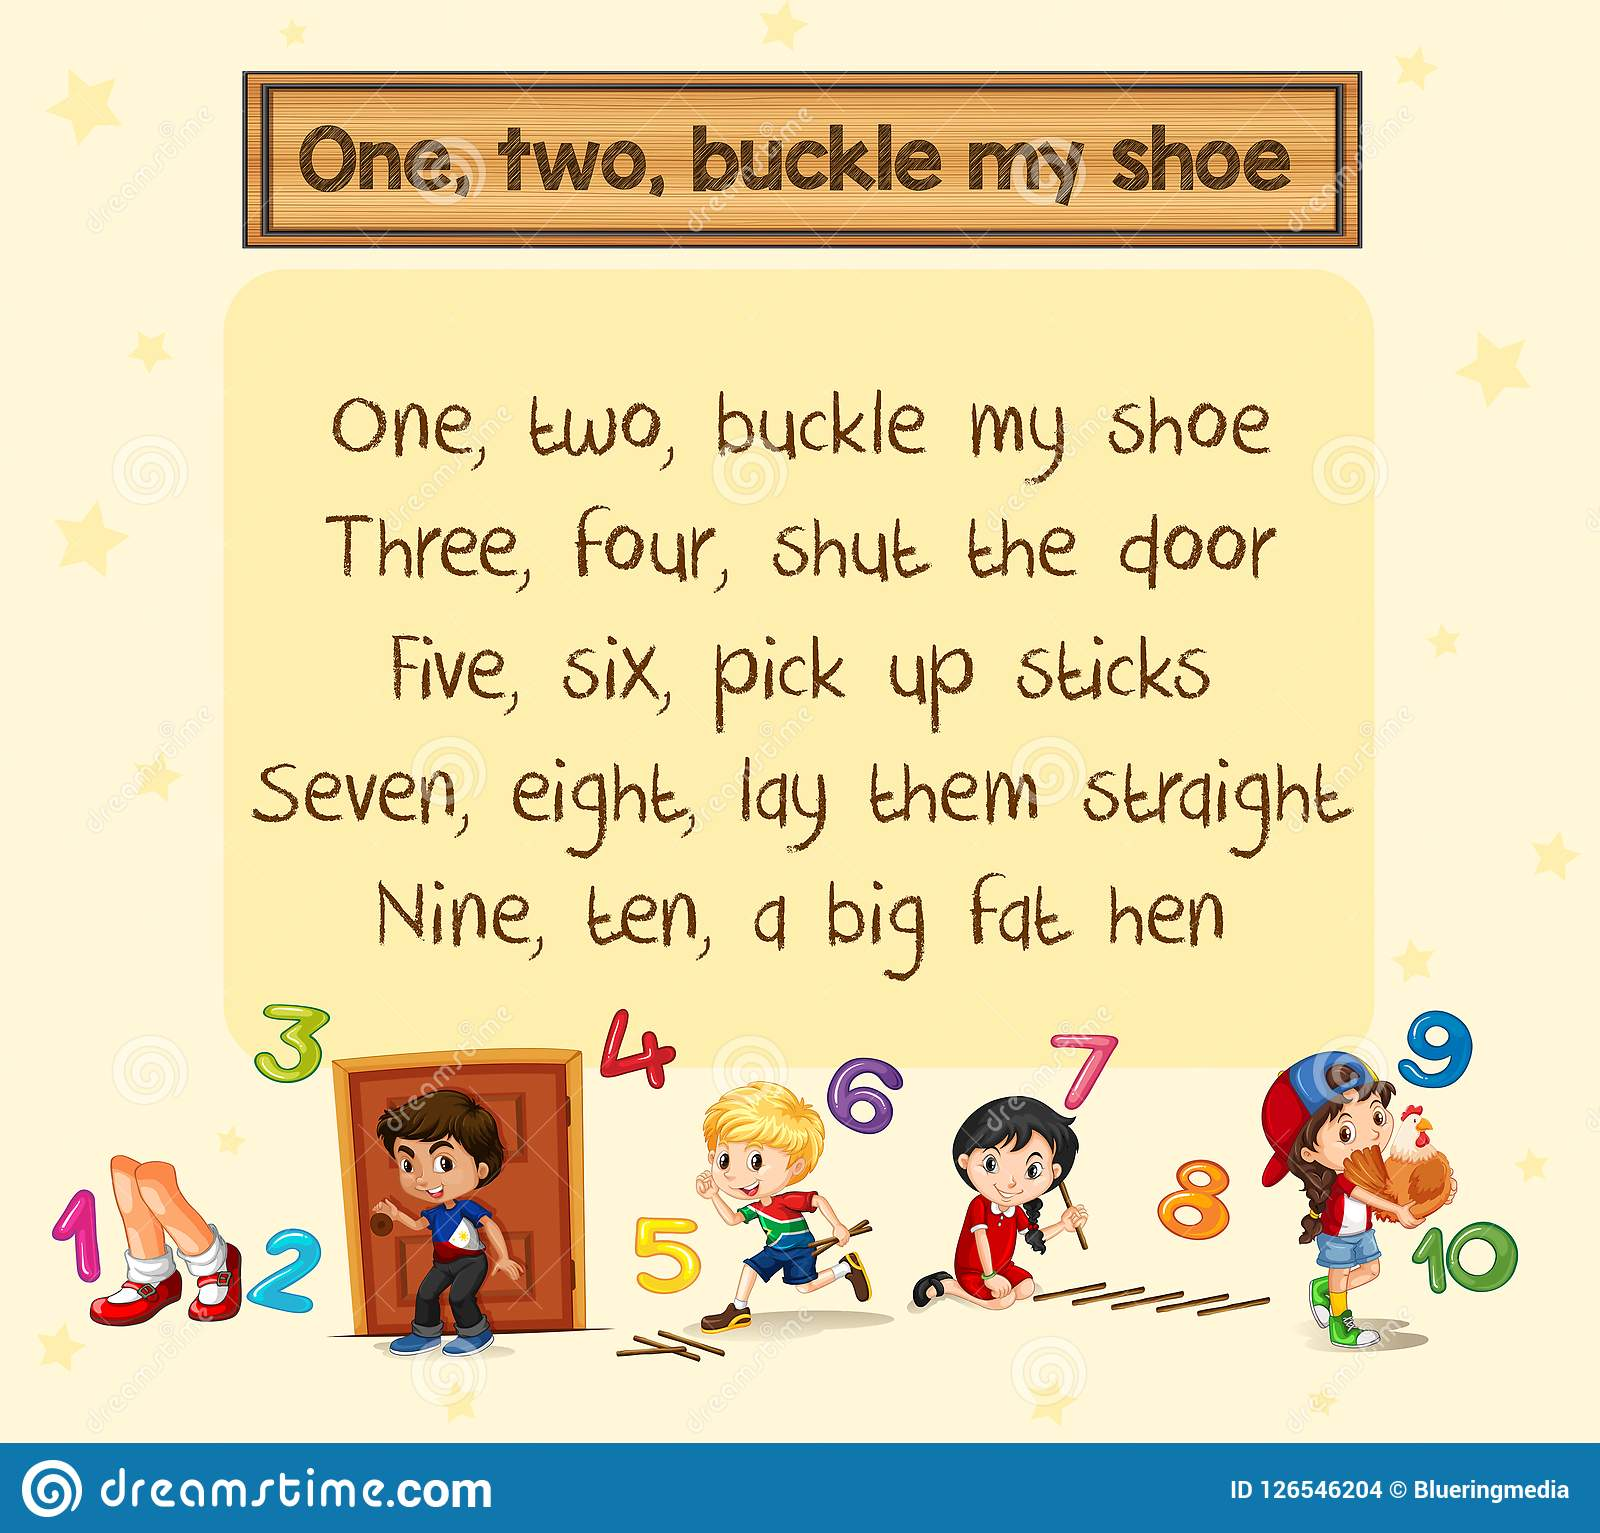 photograph regarding One Two Buckle My Shoe Printable identified as One particular 2 Buckle My Shoe Music Inventory Vector - Example of